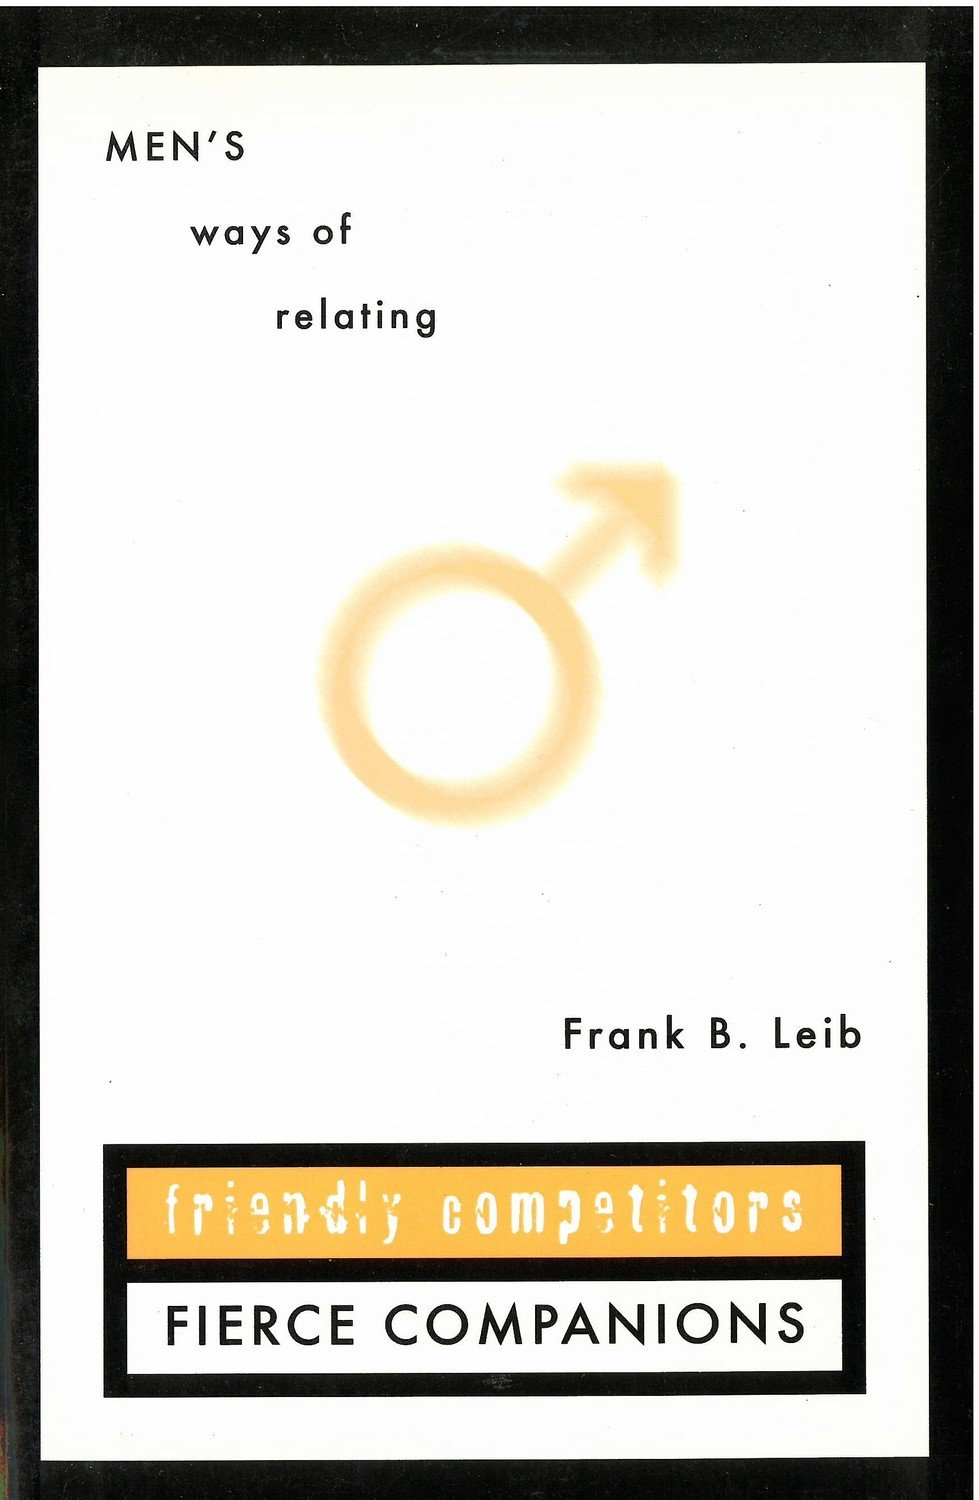 Friendly Competitors Fierce Companions: Men's Ways of Relating